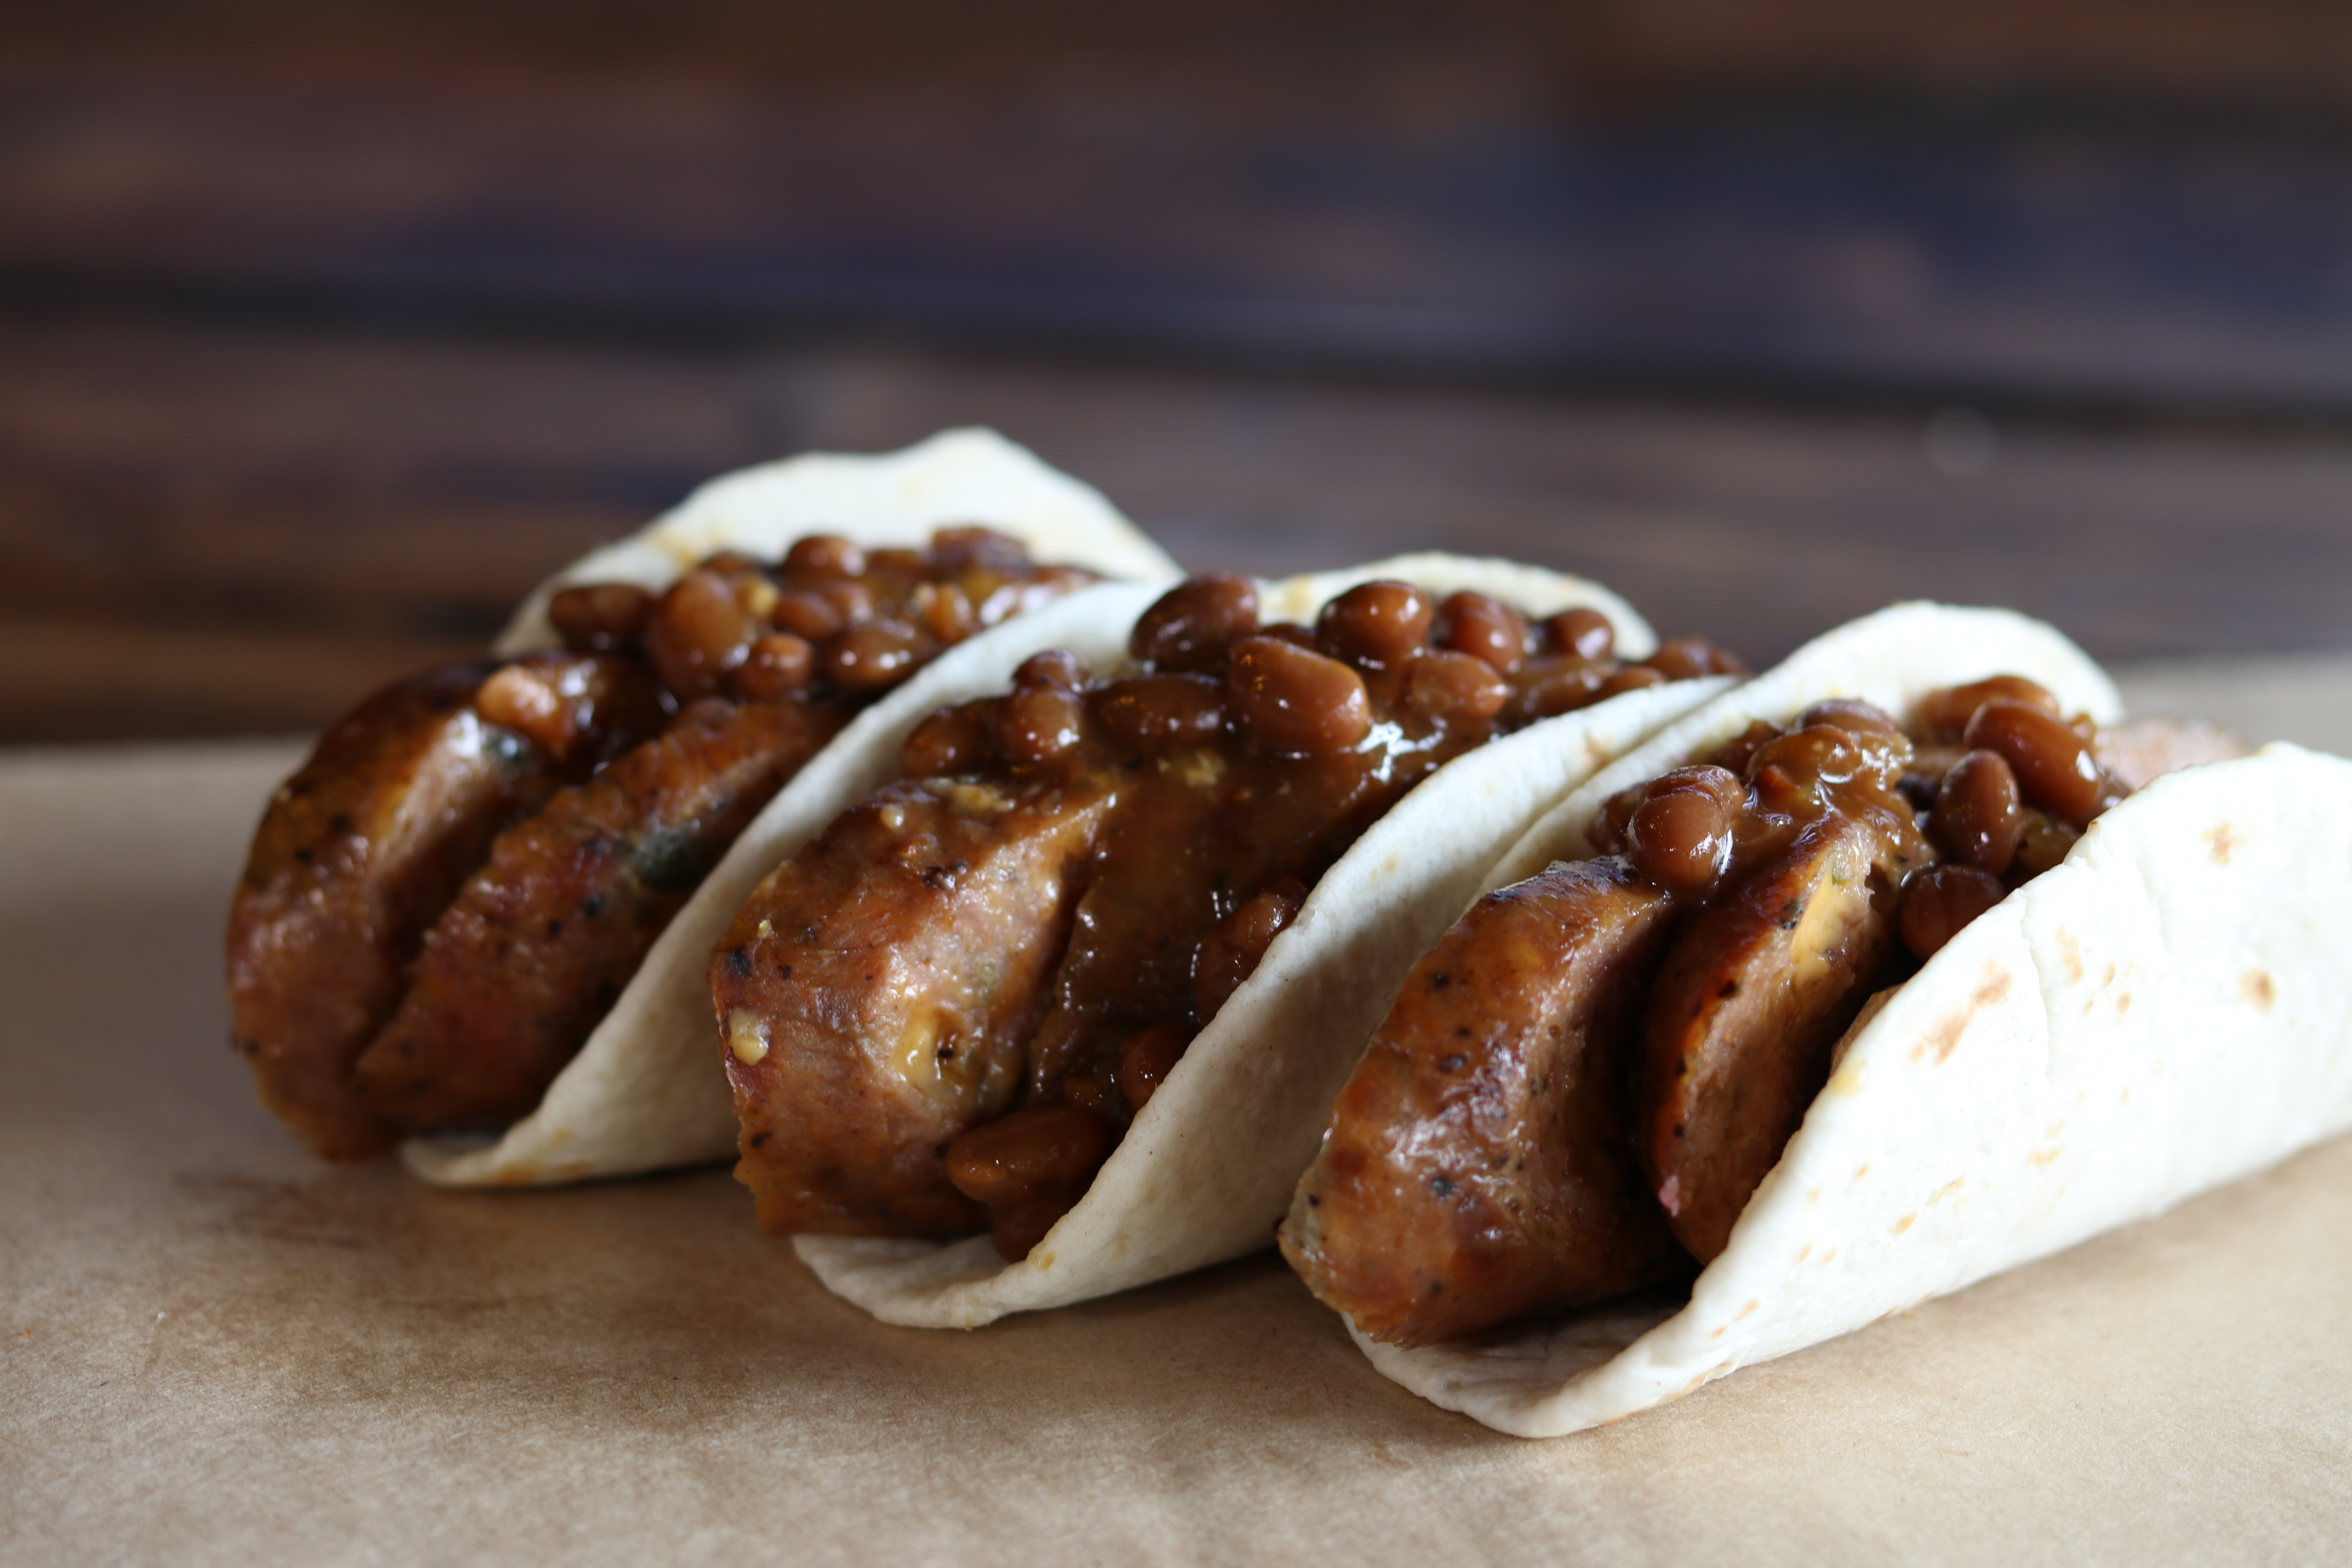 Dickey's Barbecue Pit Features Frank & Beans Taco in October, Spicing Up a Childhood Favorite